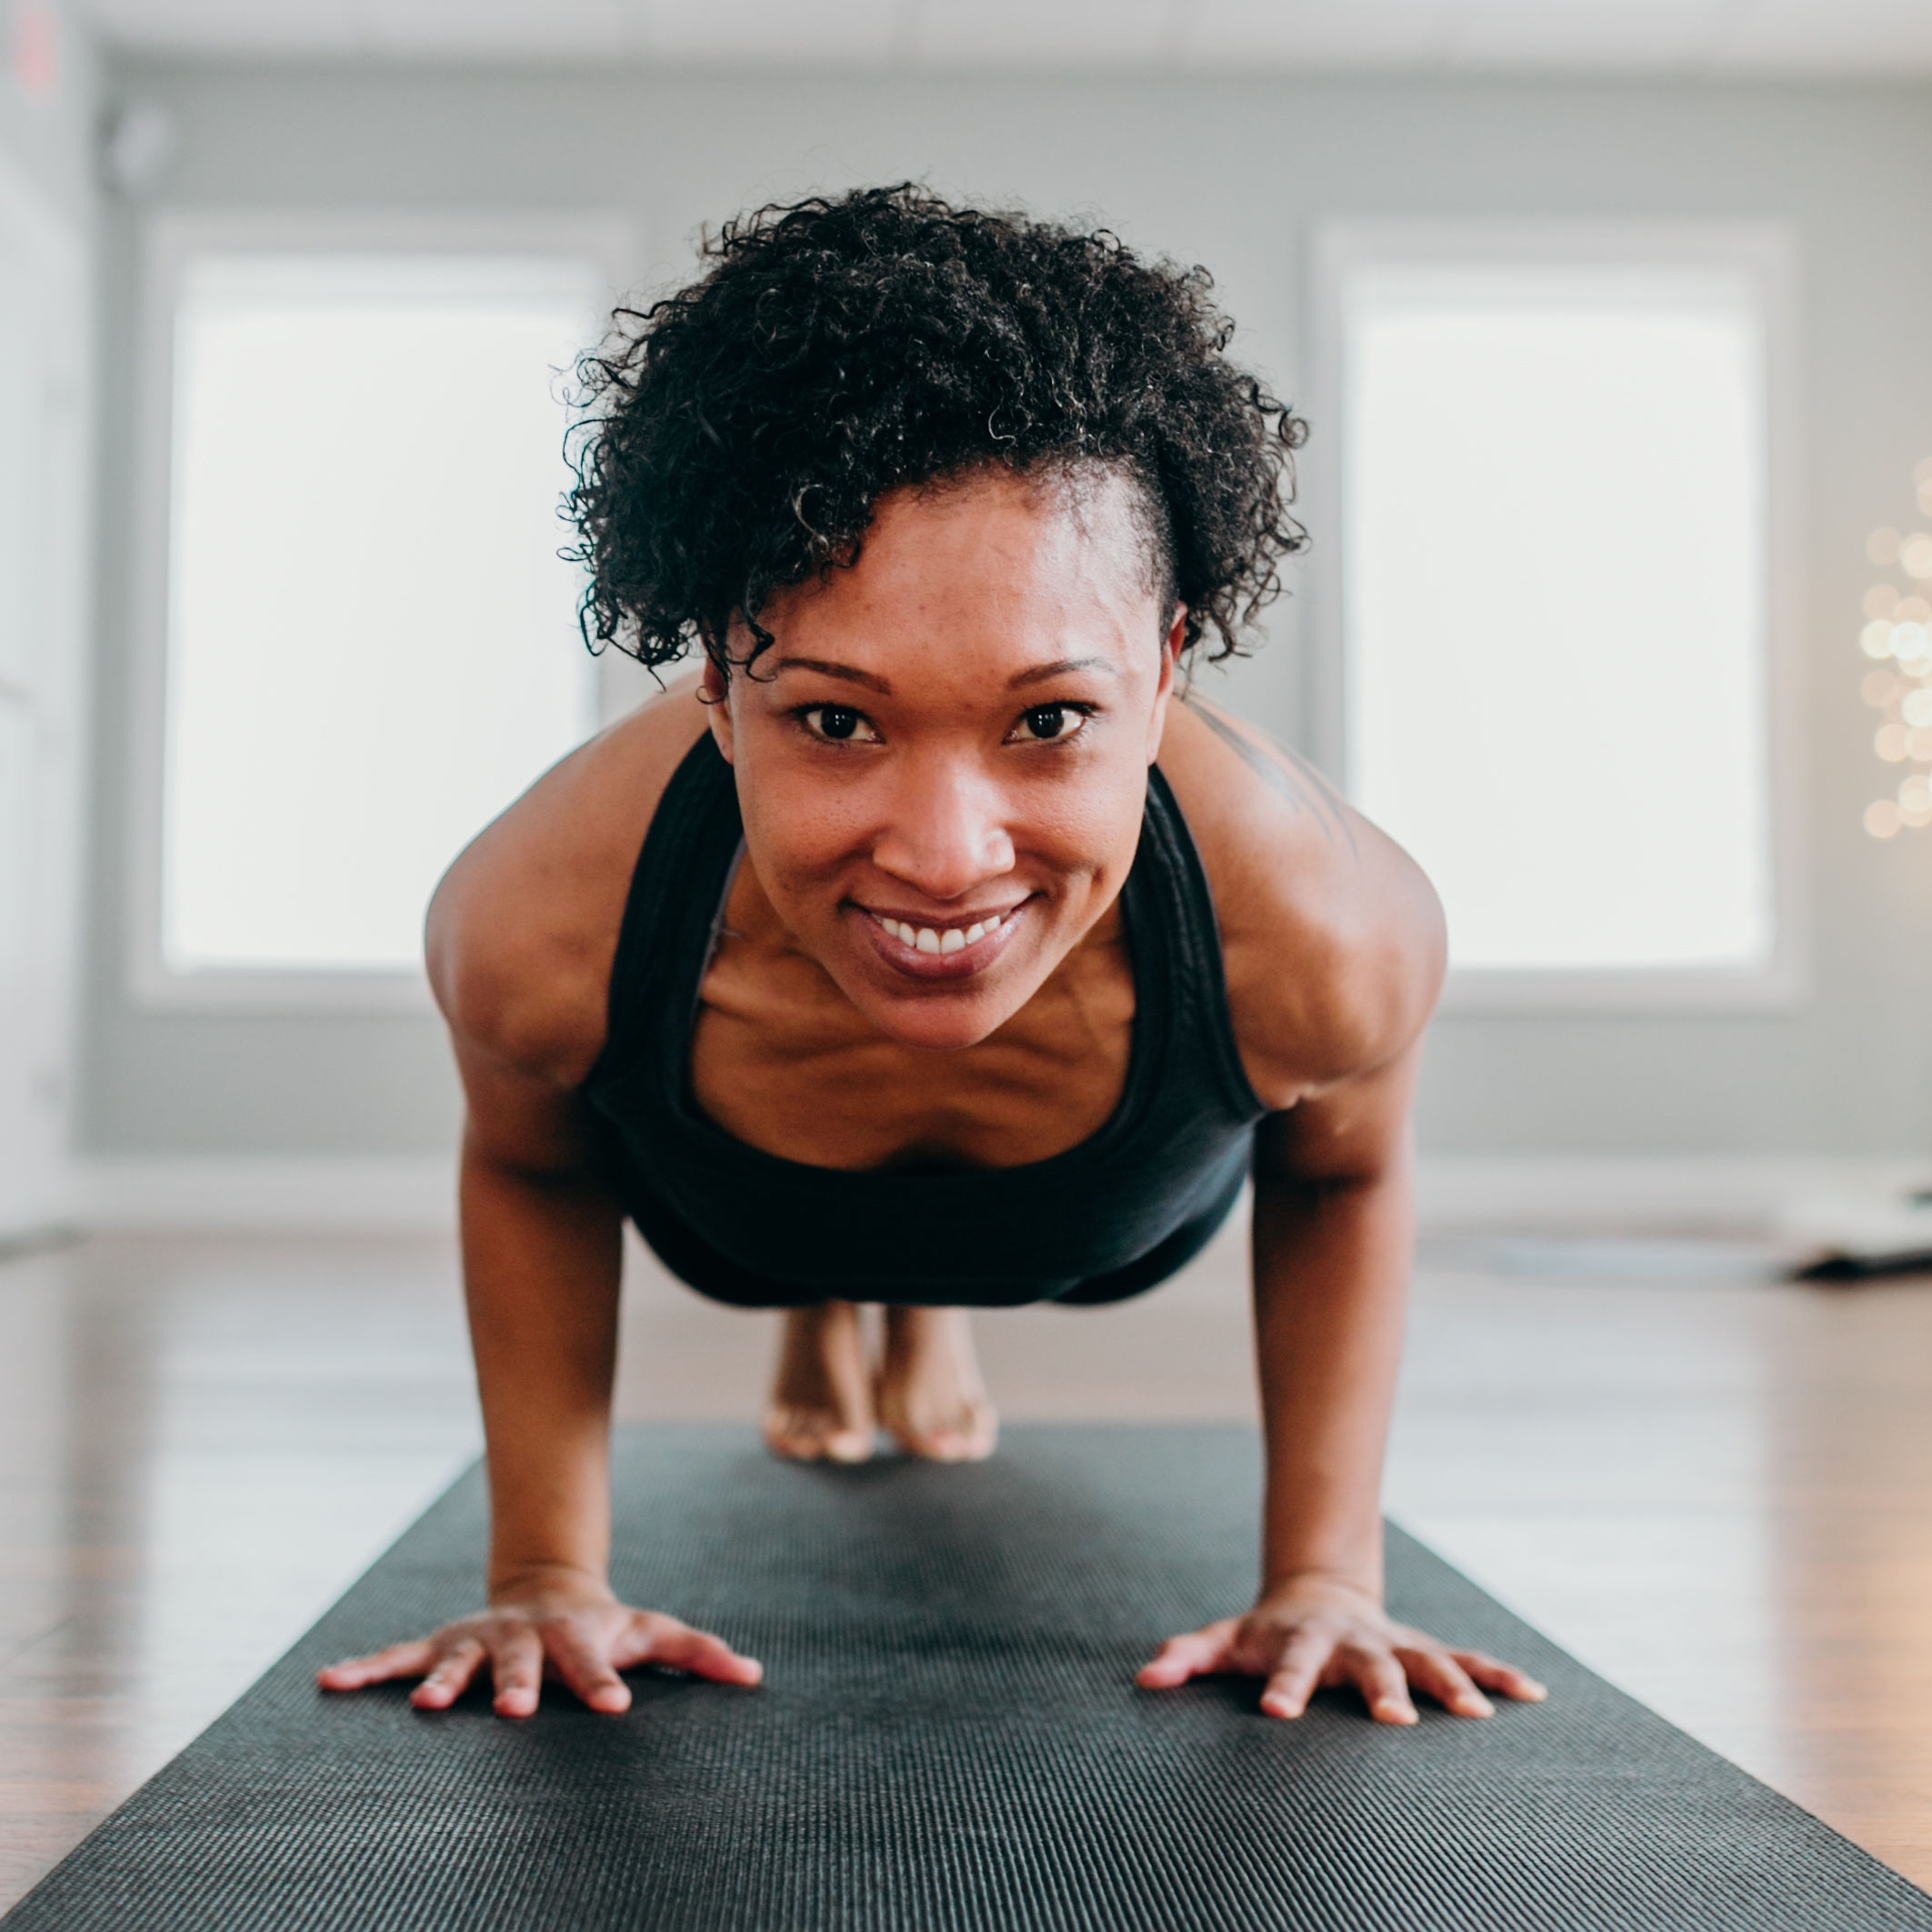 Lisa Lazarus - Lisa is a Yoga Alliance RYT-200 Certified Yoga Teacher and fitness coach. She completed her training at The Yoga Shop of West Hartford. Lisa is known for leading students through a moving meditation that will challenge the practitioner, both physically and mentally.